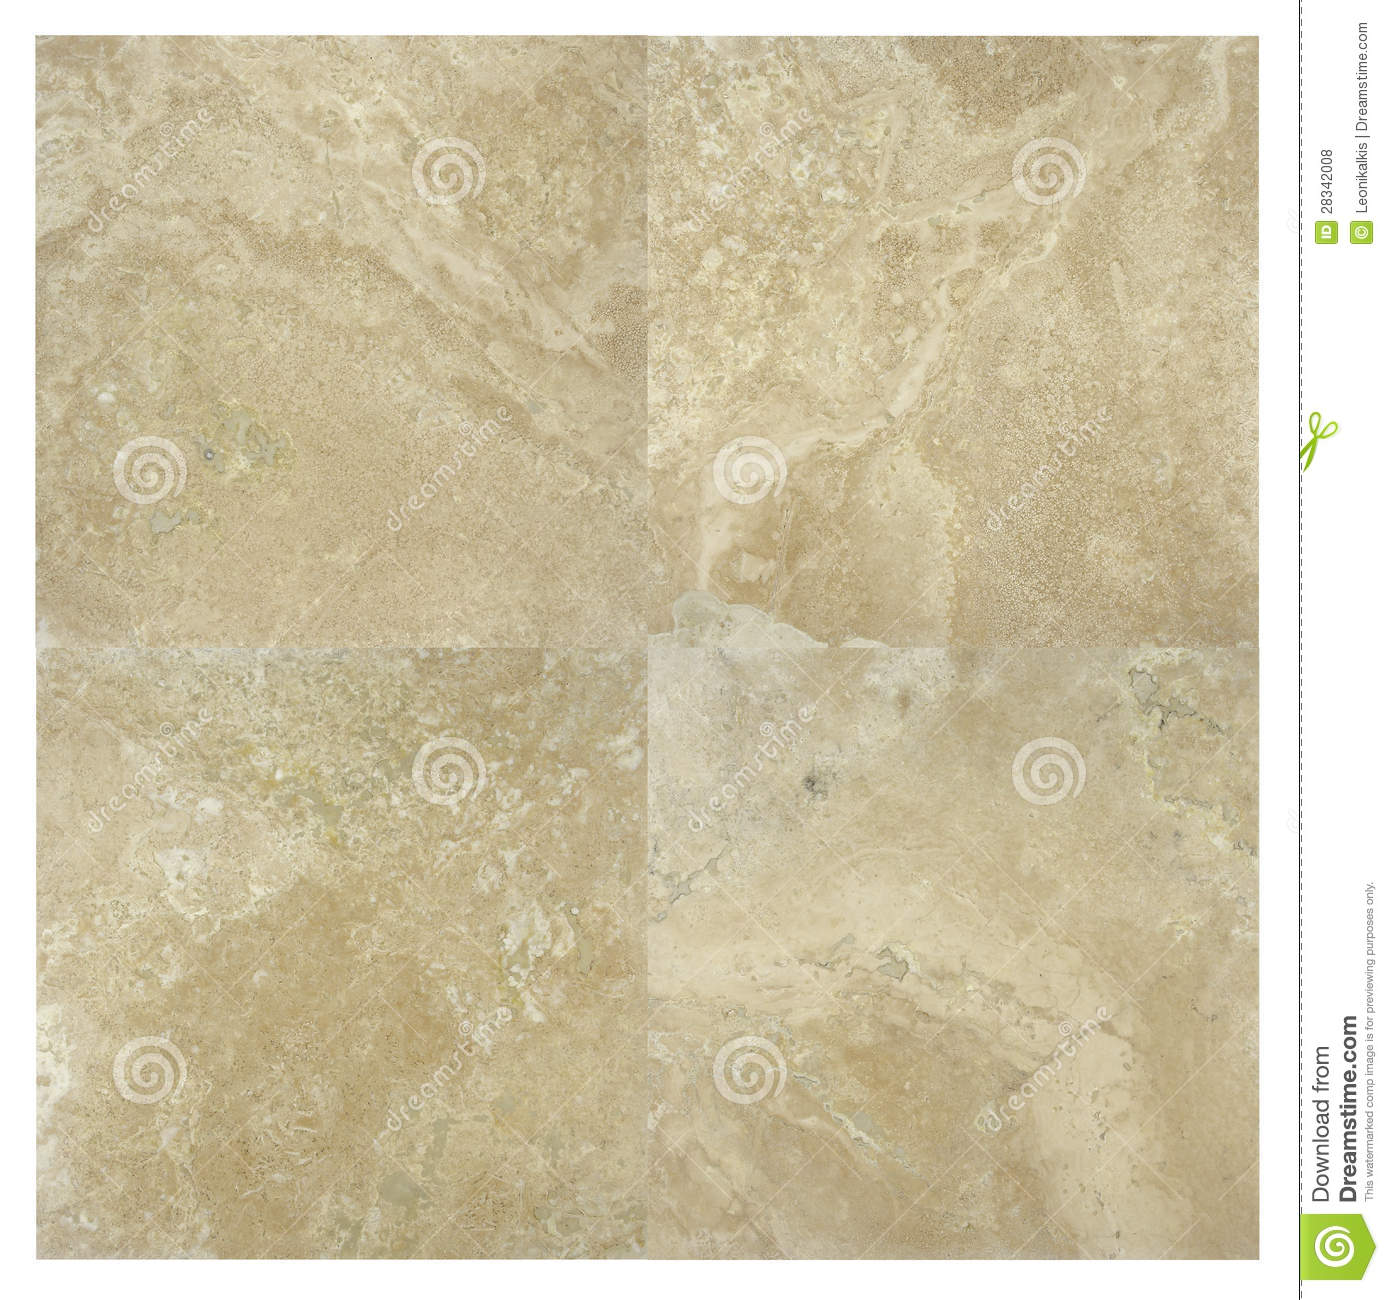 Most Inspiring Wallpaper High Quality Marble - high-quality-marble-tile-28342008  Graphic_74169.jpg